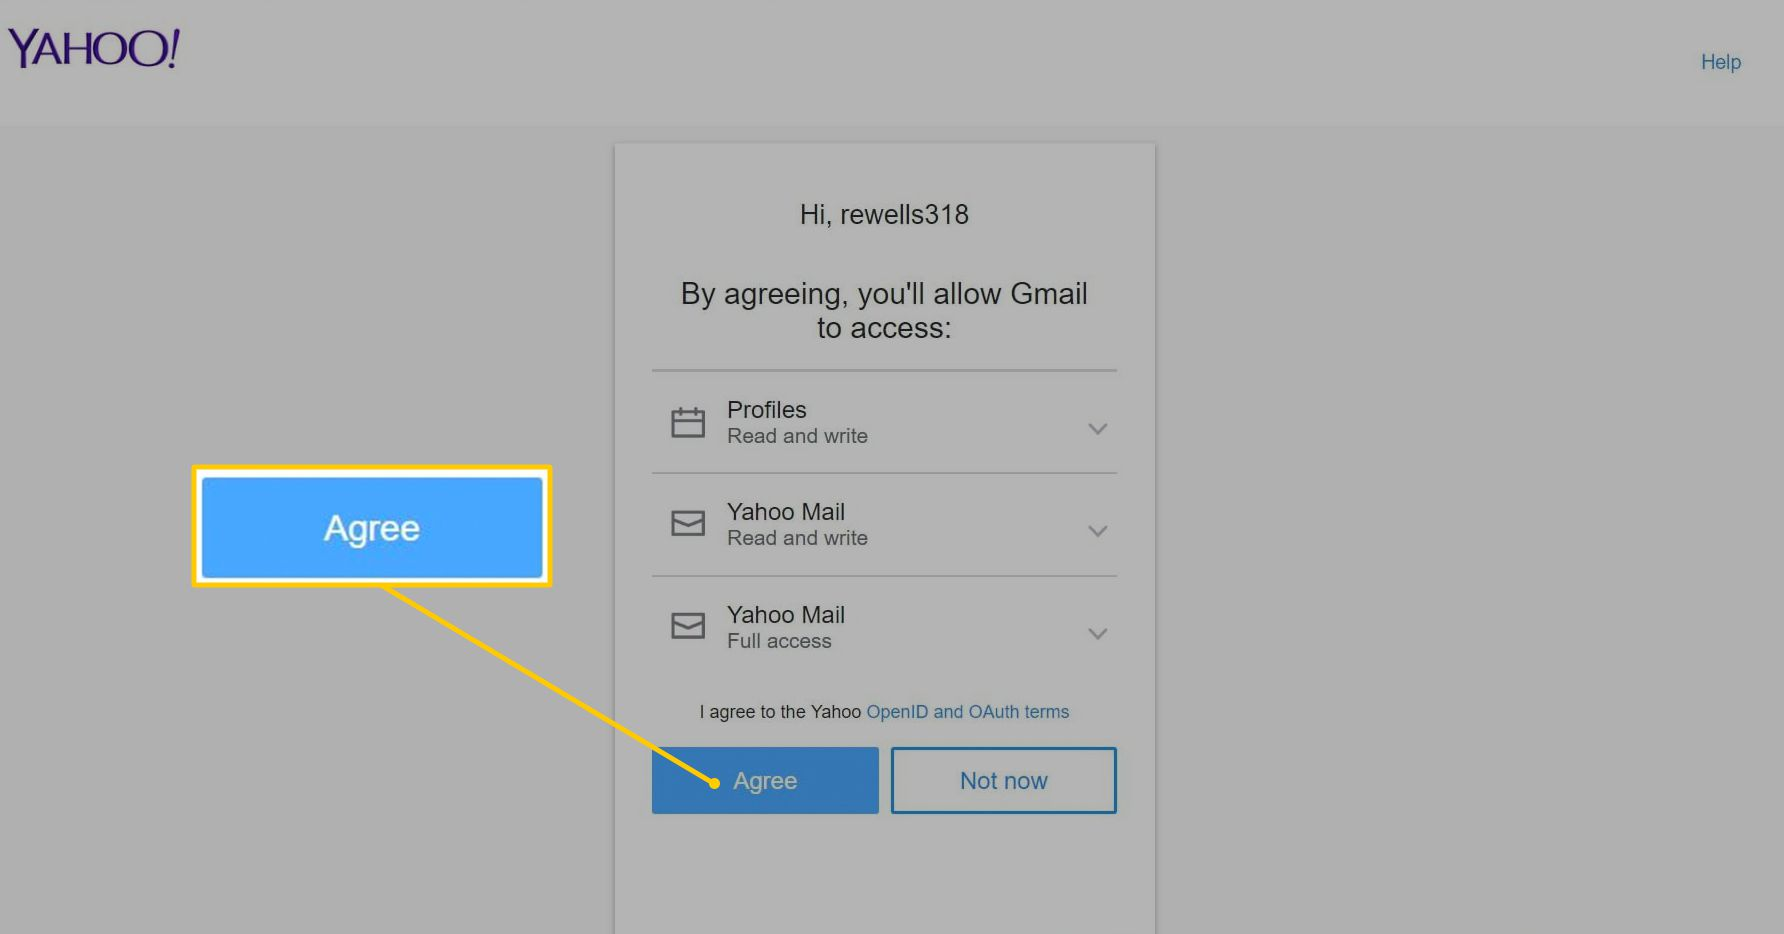 How to Access Yahoo Mail in Gmail